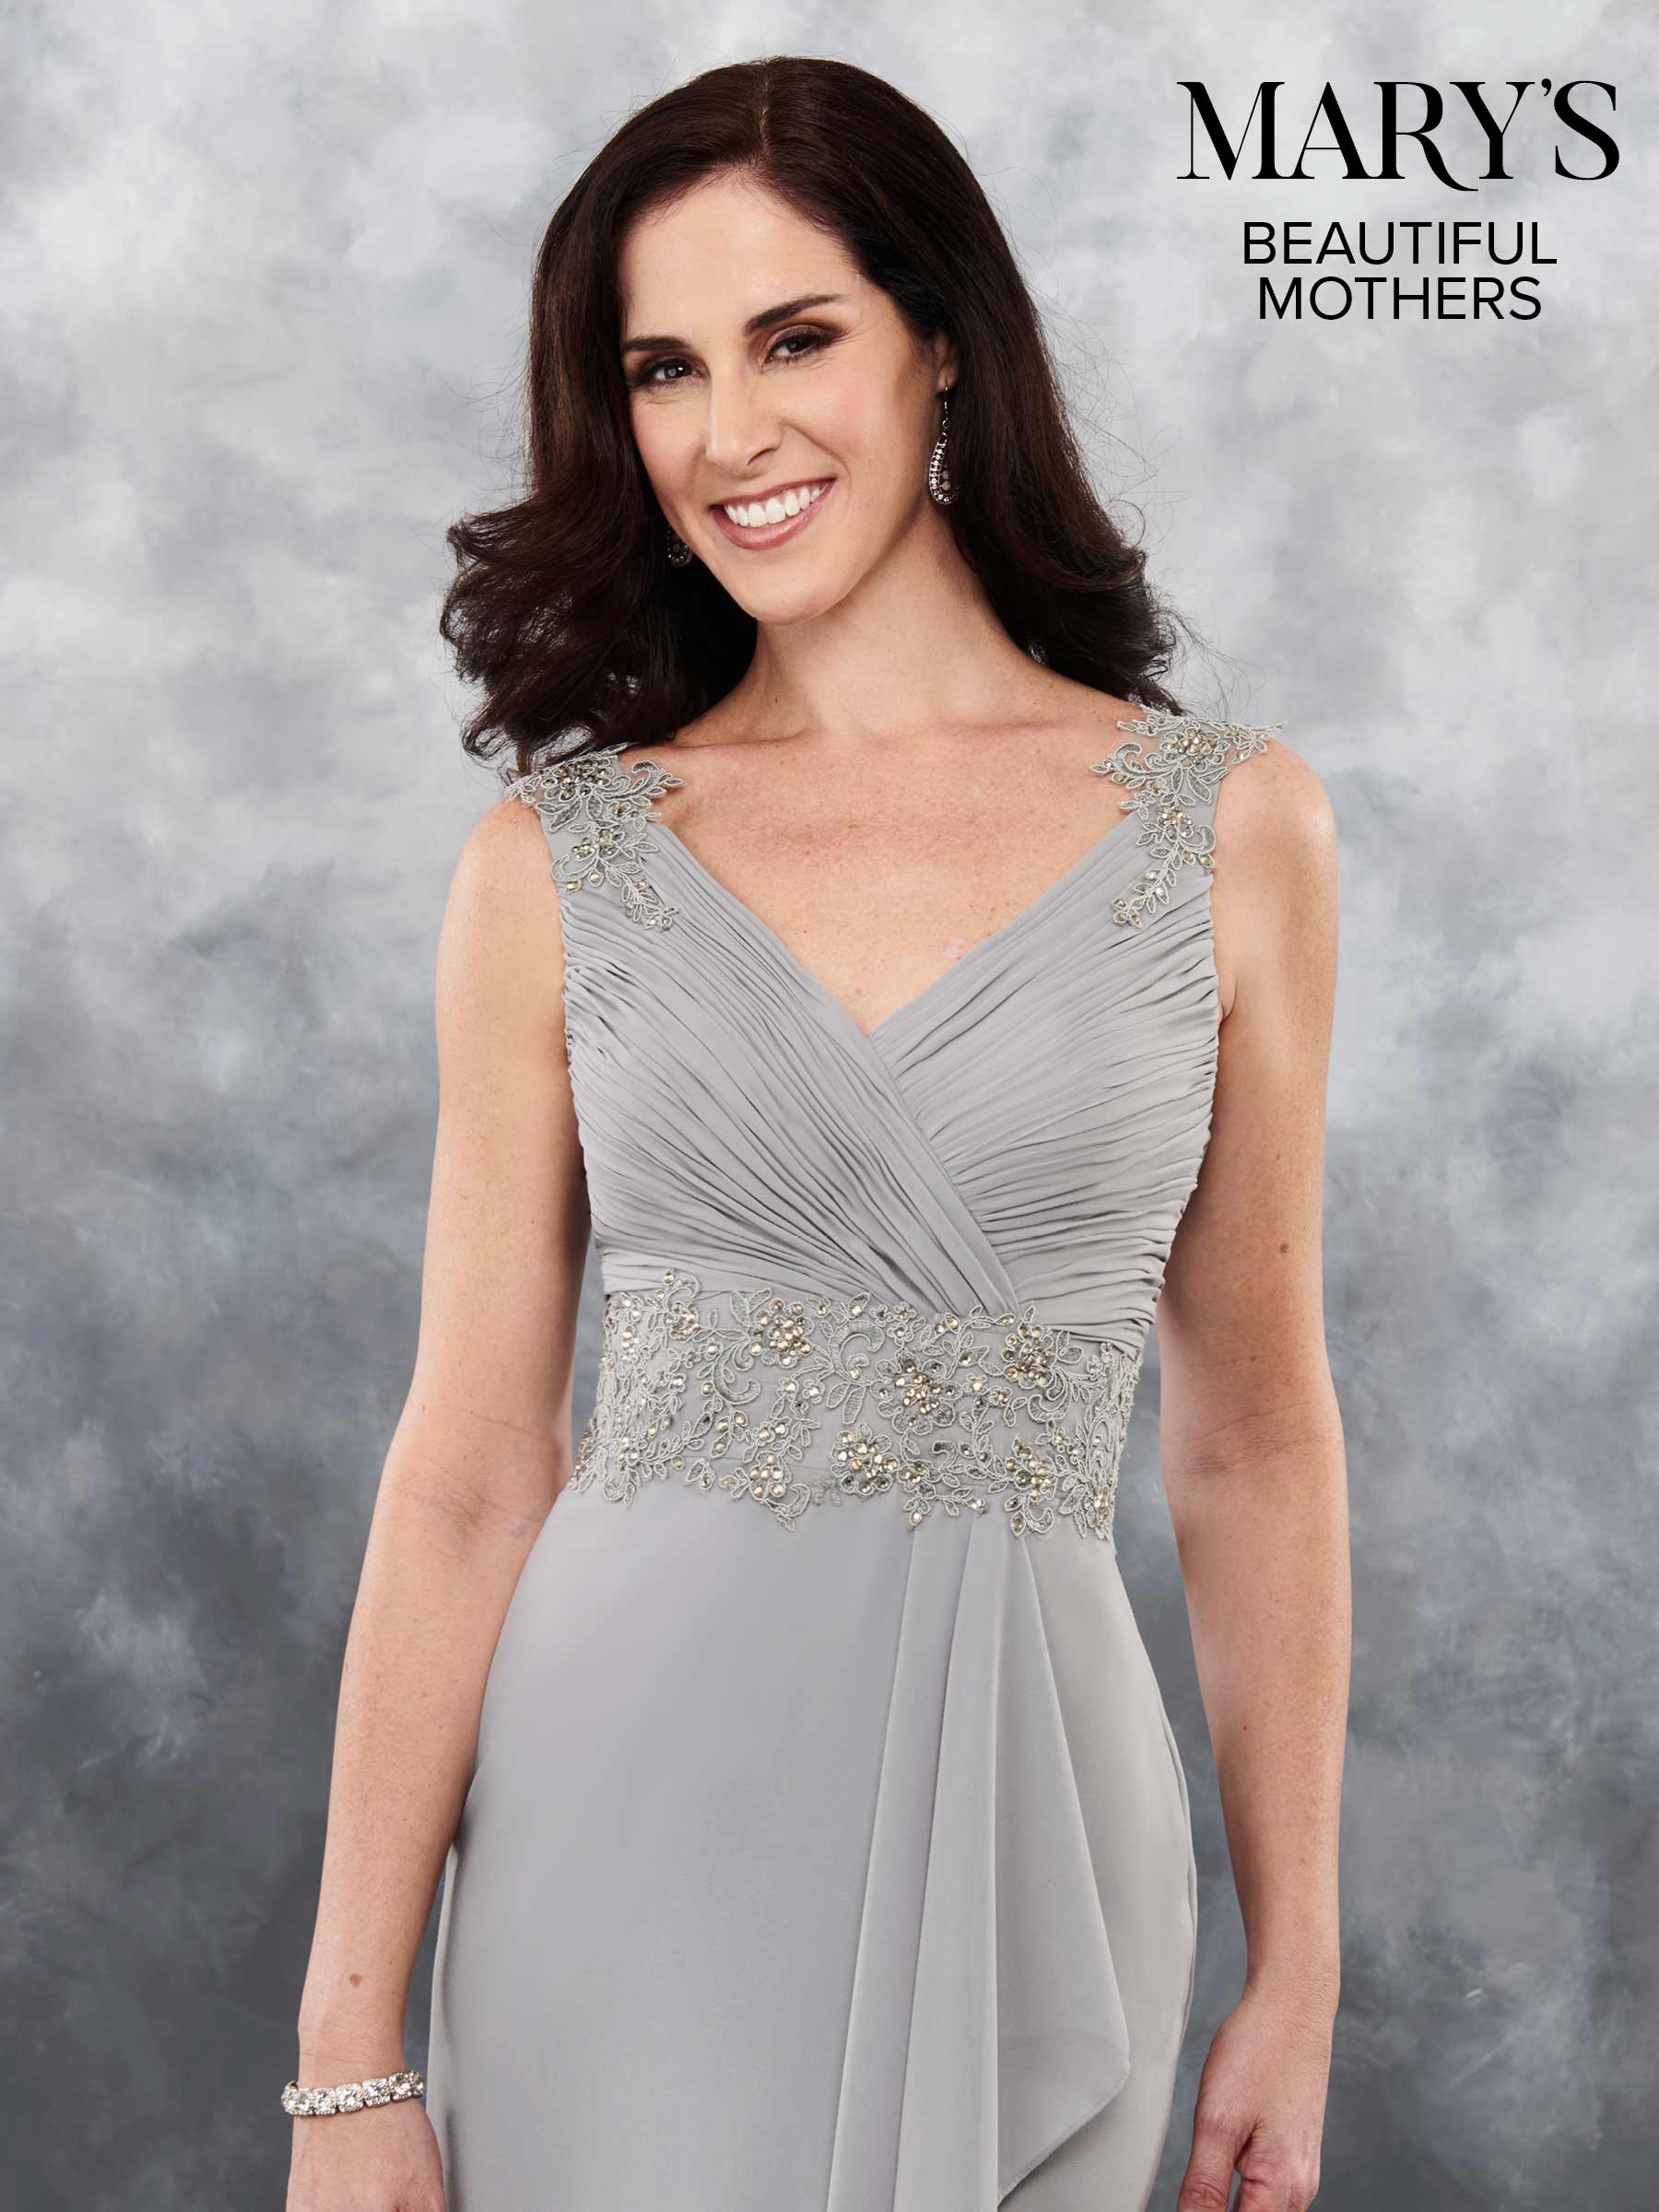 Mother Of The Bride Dresses | Beautiful Mothers | Style - MB8030